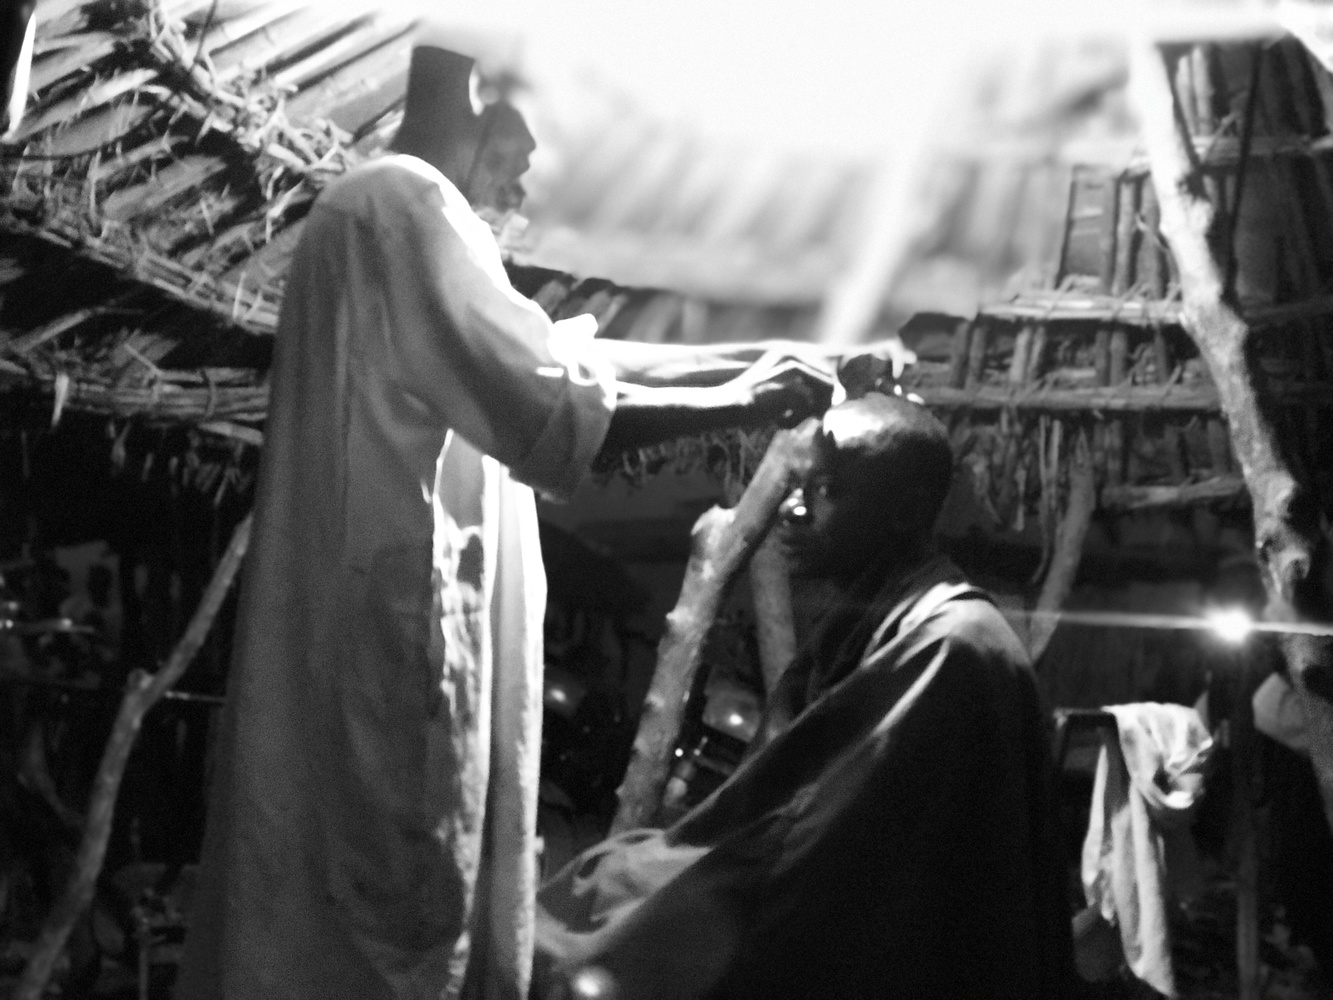 Groomed Under A Hut by Lawal Mohammed